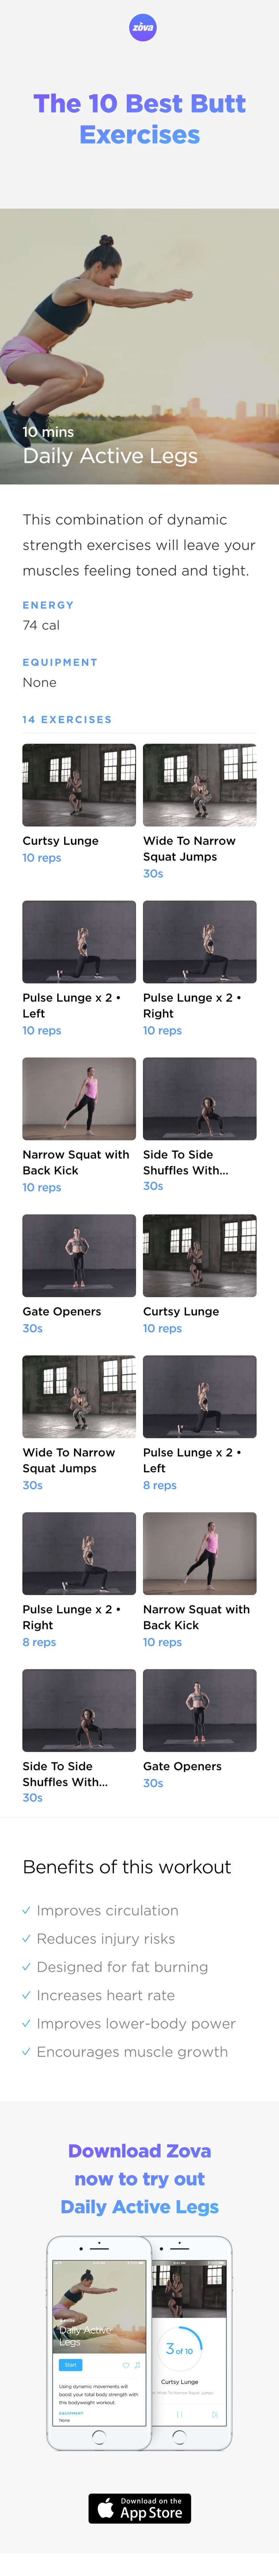 All you need in order to create the booty of your dreams is a mix of dynamic and fast exercises targeted to your lower body. These 10 butt exercises will firm up and shape your muscles, while improving your strength and mobility. Just find 10 minutes in your day to work on your behind. Easy! #butt #workout #HIIT #fitness #booty